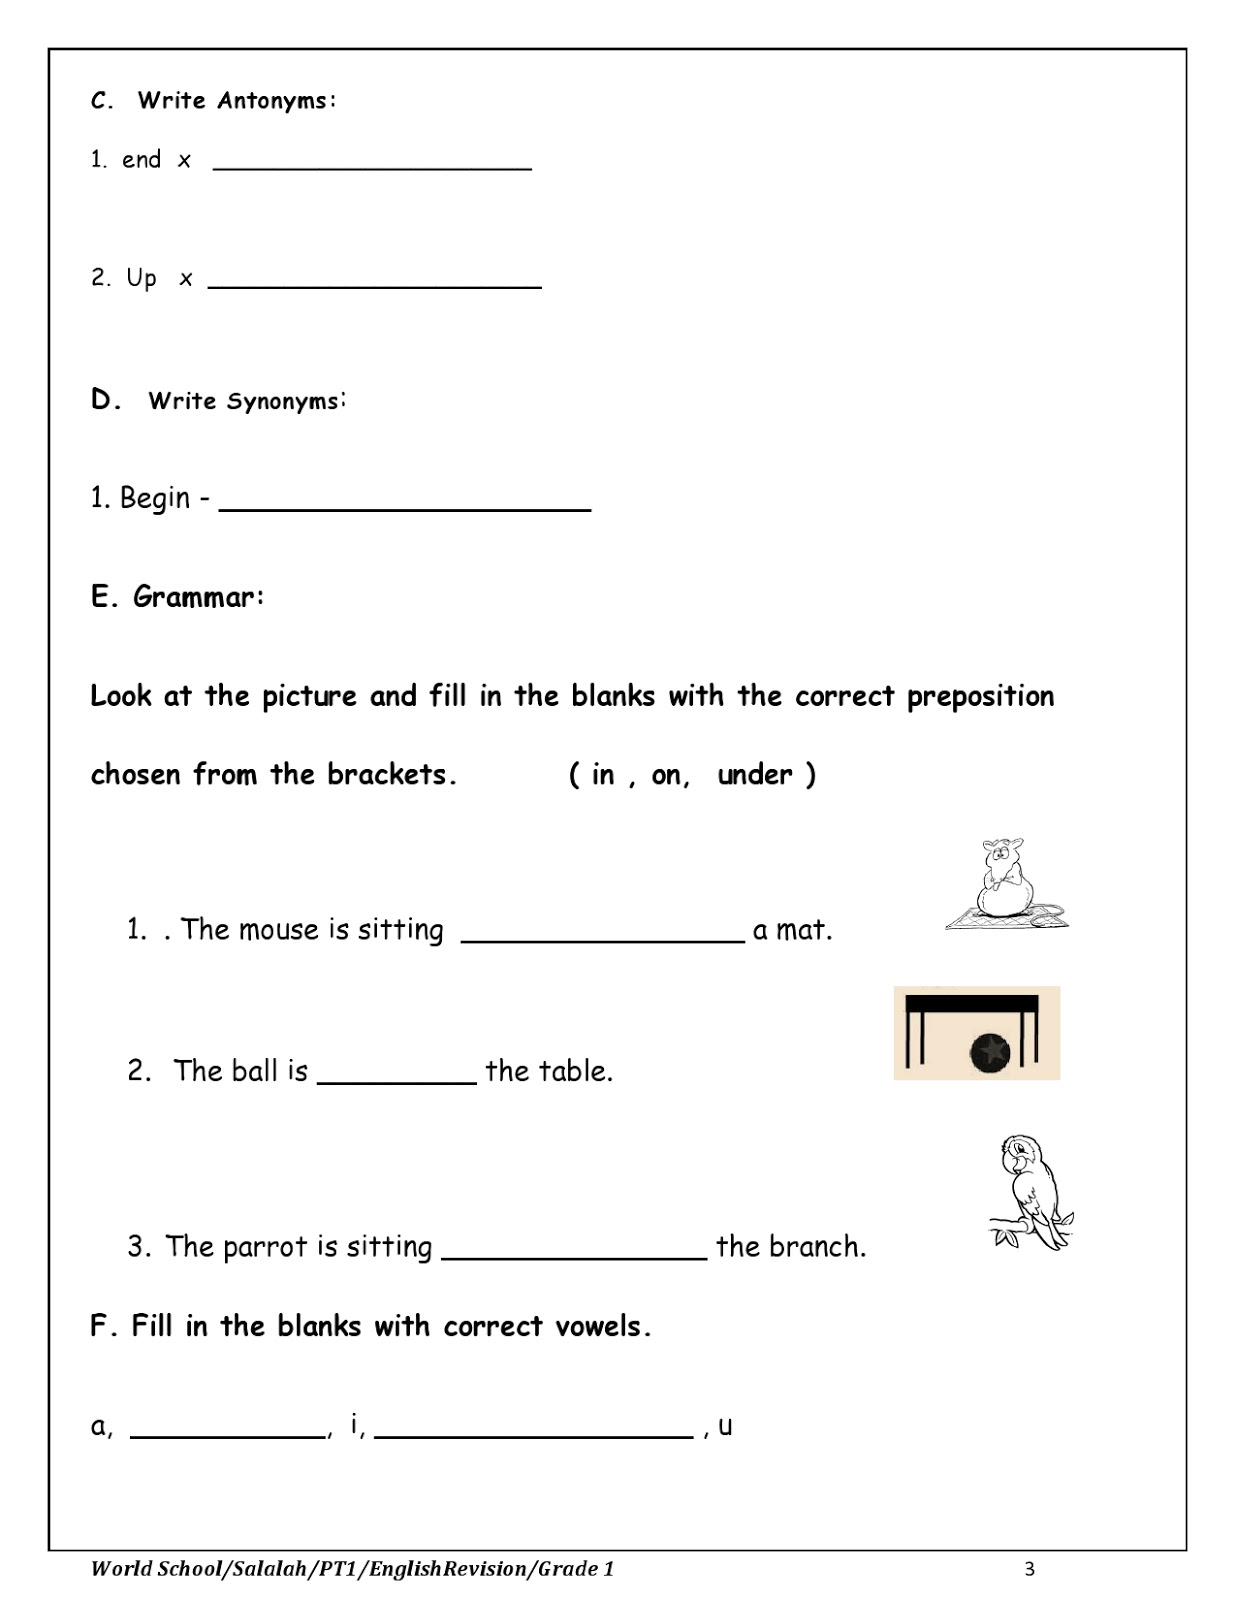 small resolution of WORLD SCHOOL OMAN: Revision Worksheet for Grade 1 as on 03-10-2019